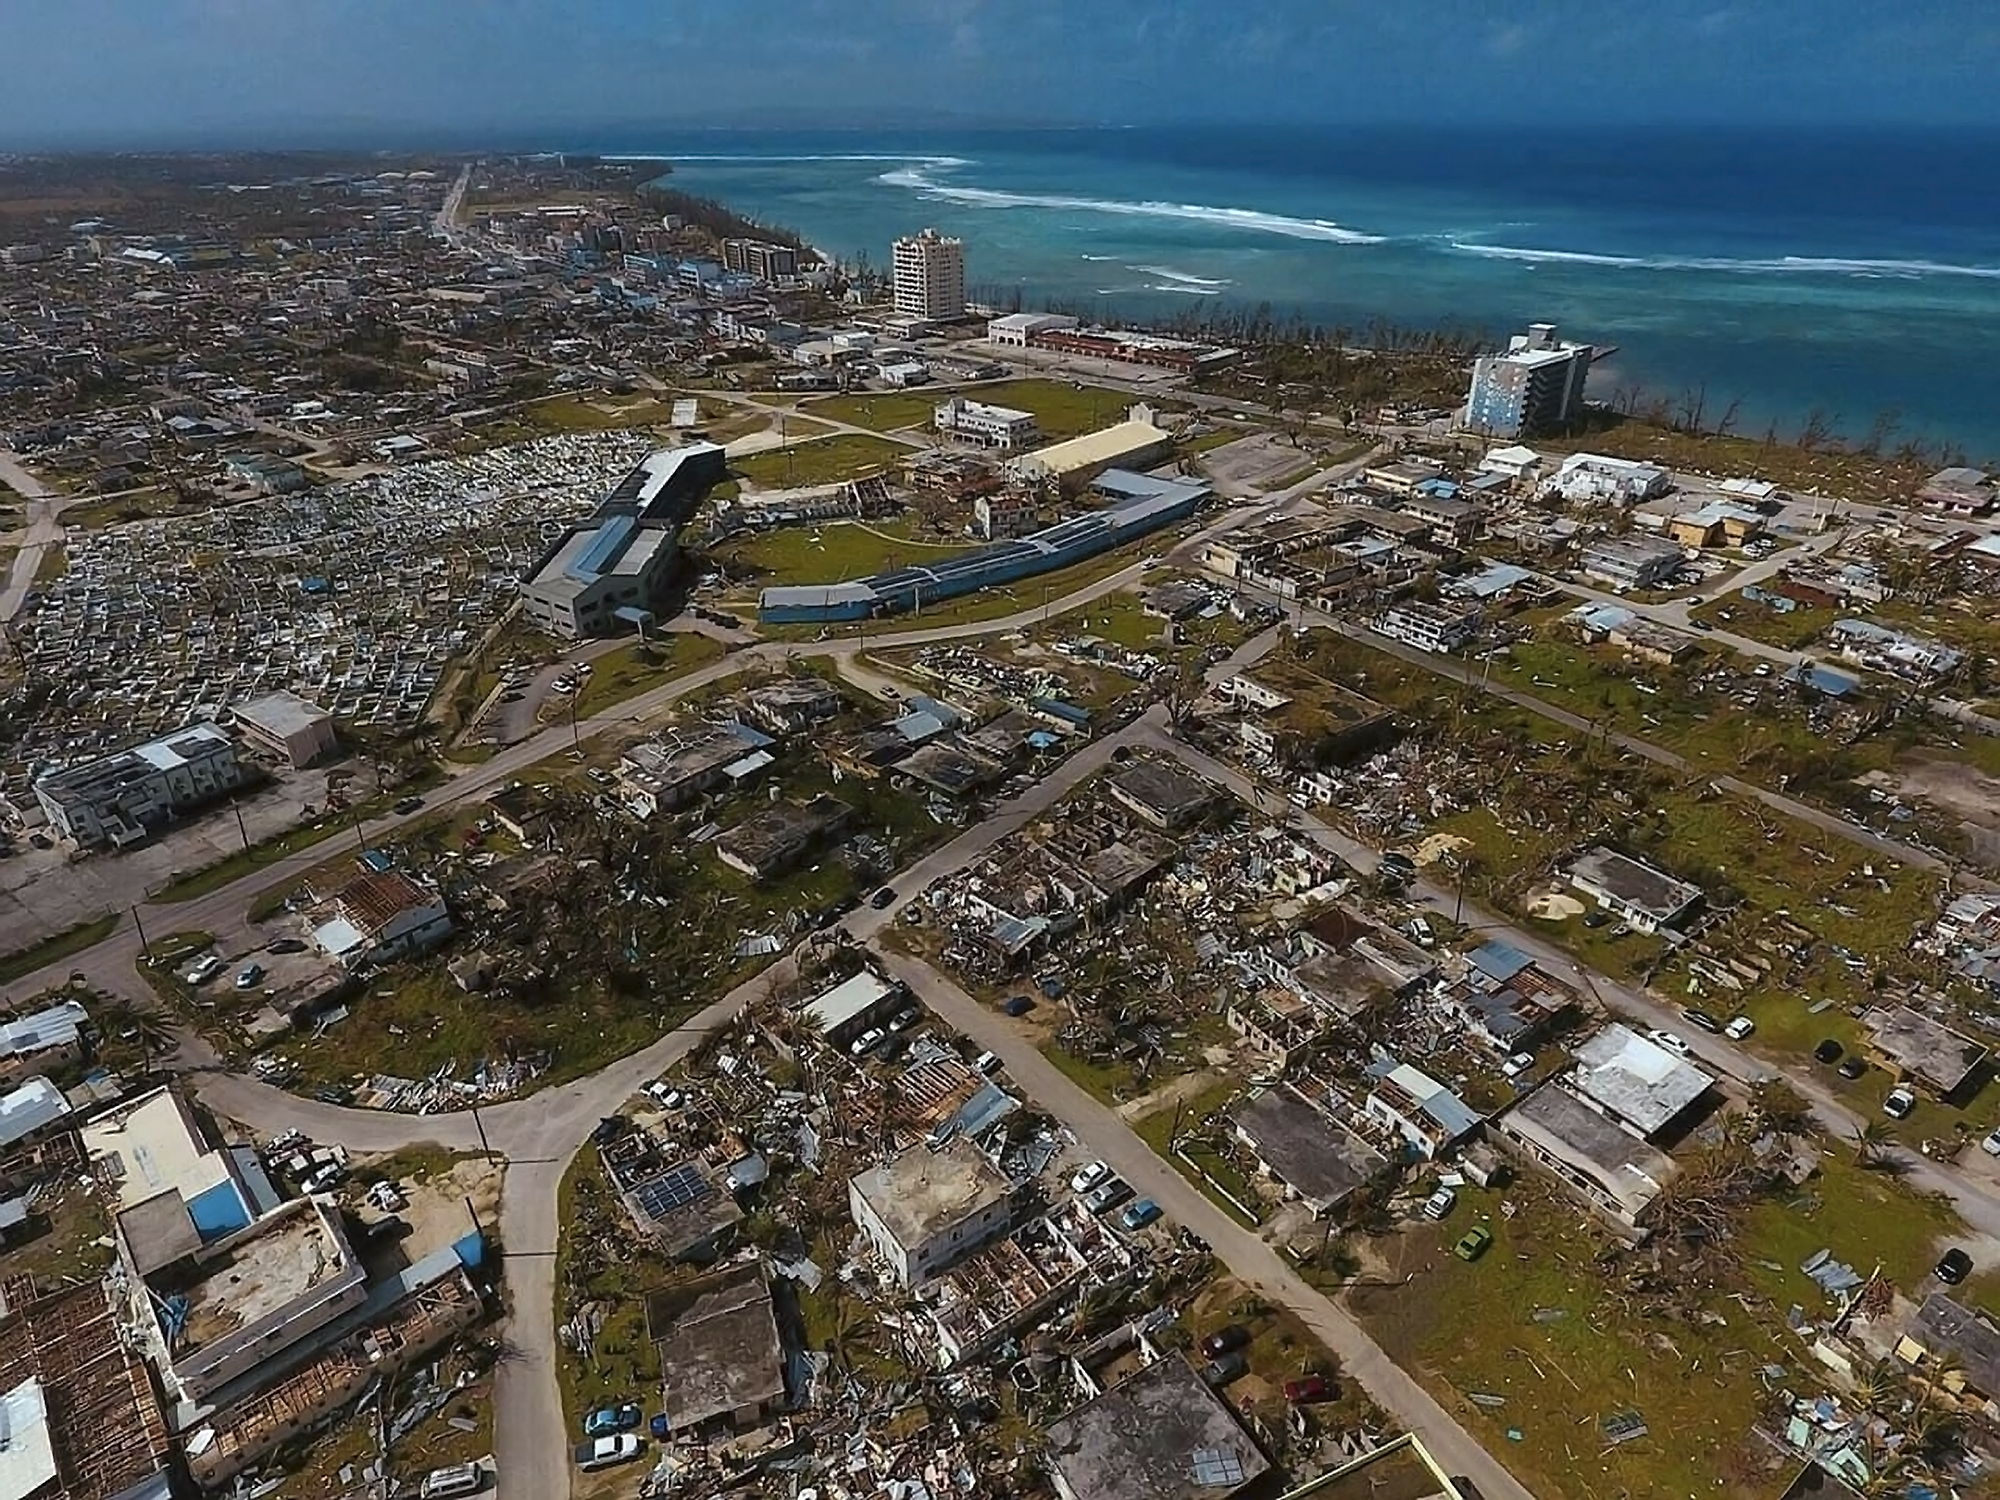 November 4, 2018 - Saipan, Northern Mariana Islands, United States of America - An aerial photo showing the southern end of Saipan almost completely destroyed by Super Typhoon Yutu November 4, 2018 in Saipan, Commonwealth of the Northern Mariana Islands. The islands were devastated by Typhoon Yutu on October 28th, the strongest typhoon to impact the Mariana Islands on record. (Credit Image: © James May via ZUMA Wire)